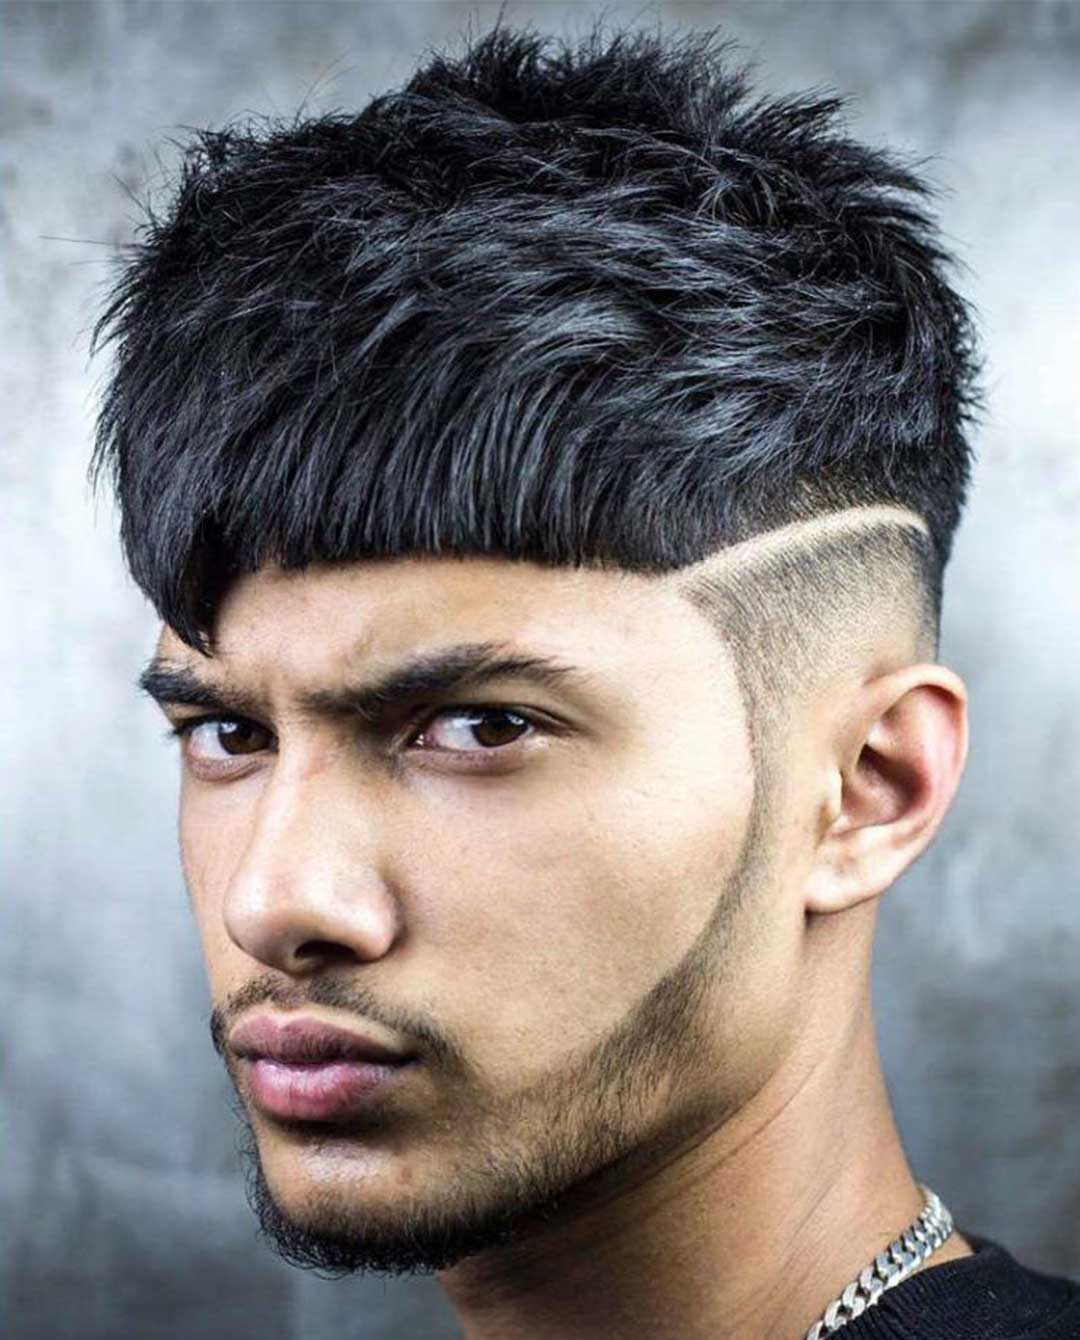 Cropped Hair with Hard Line